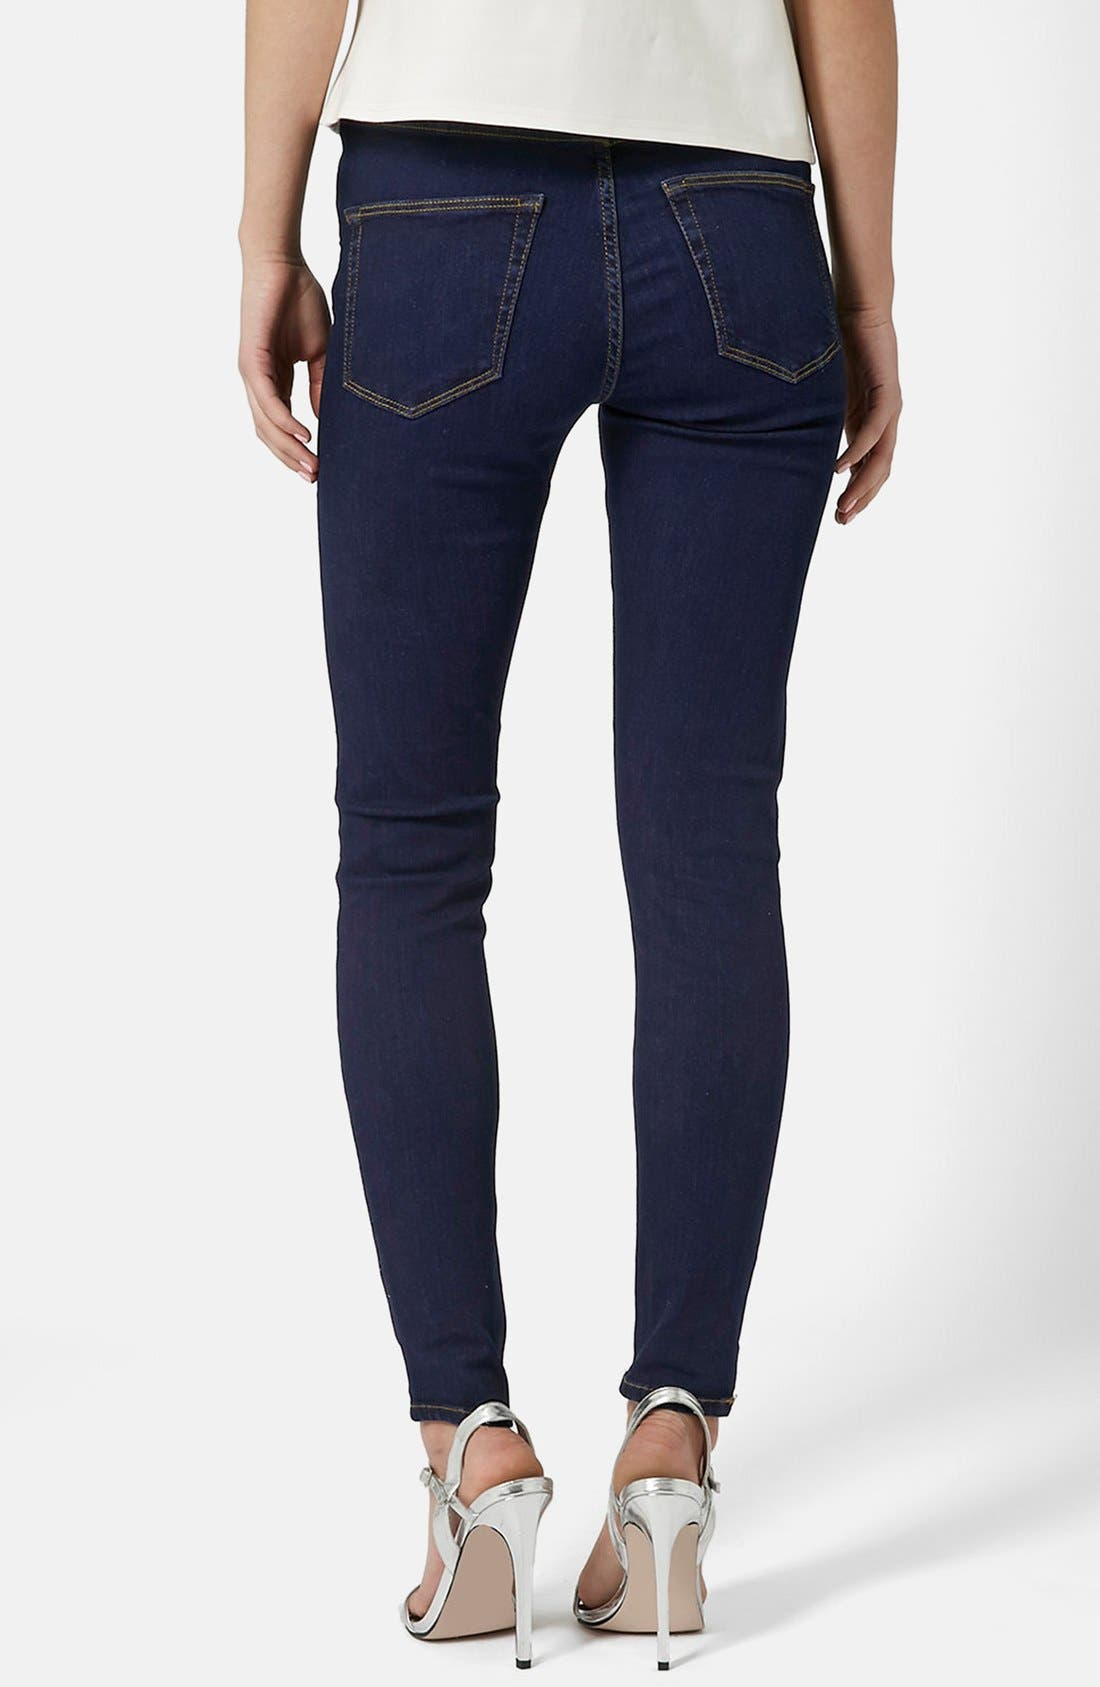 TOPSHOP, Moto 'Jamie' Skinny Jeans, Alternate thumbnail 4, color, 400